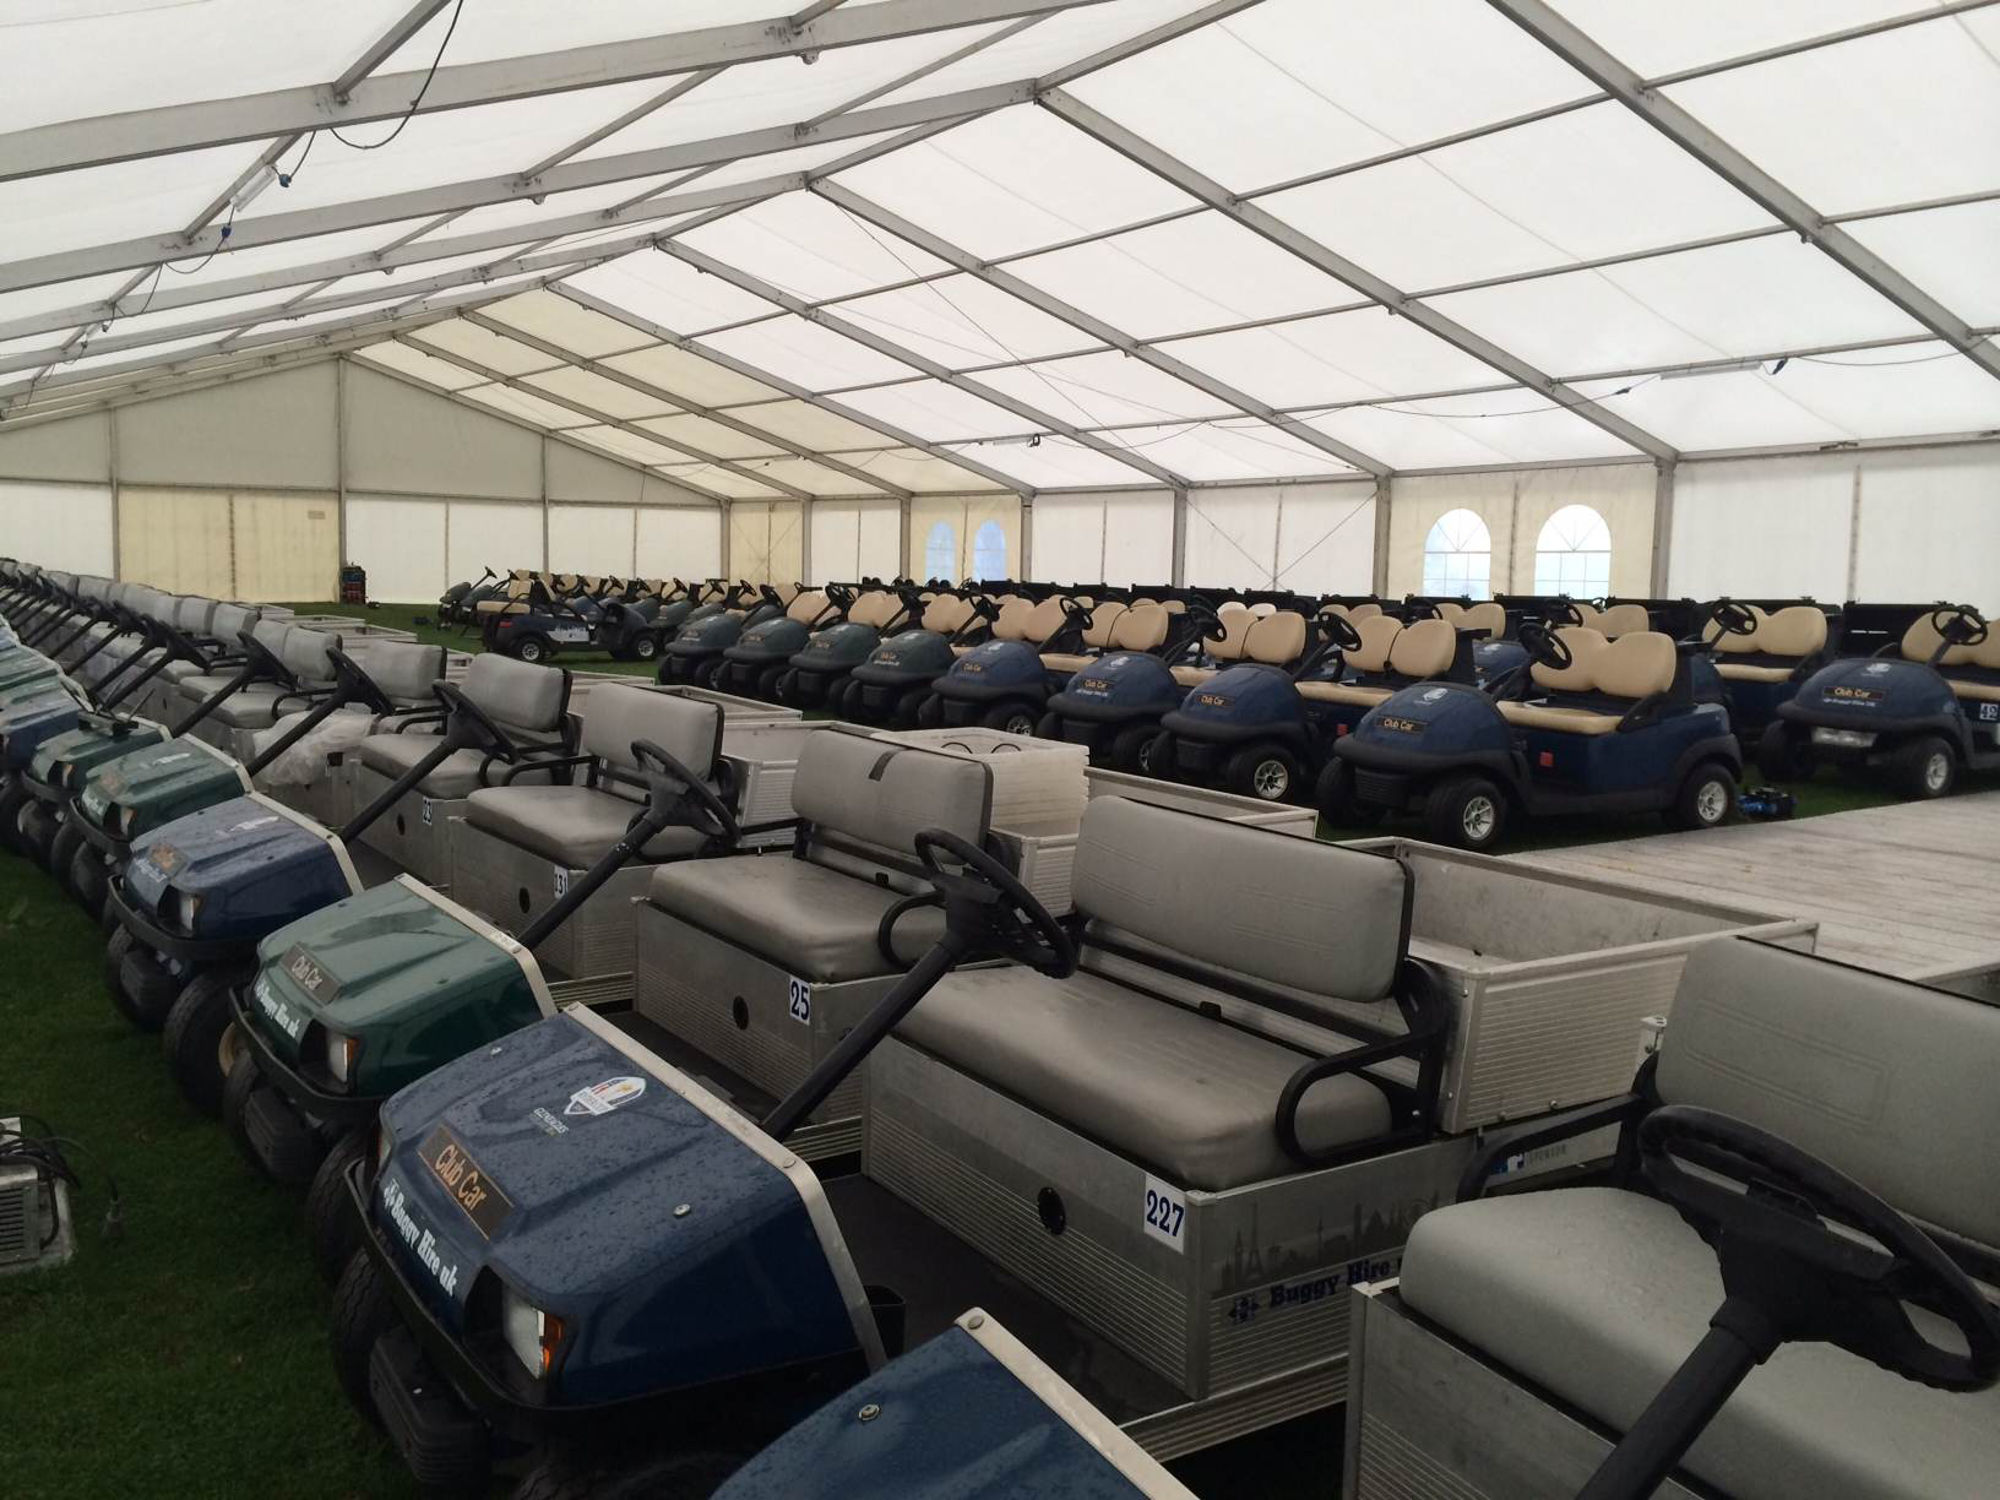 Industrial Hire - Temporary Warehouse for Golf Buggys